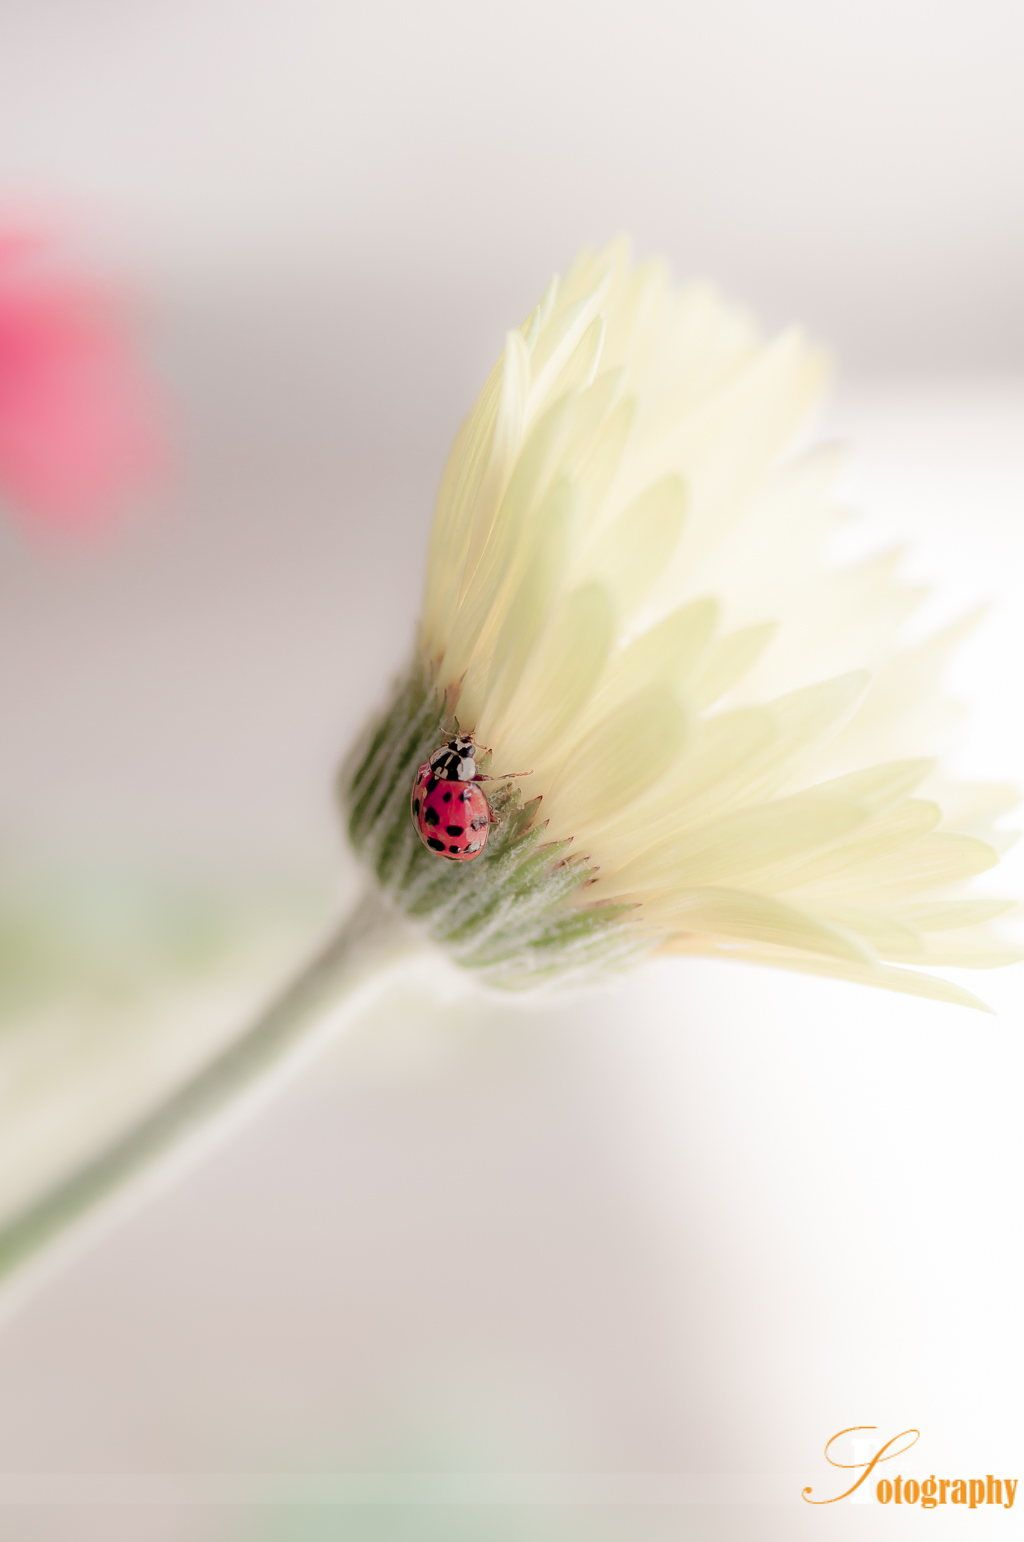 Lady on the Flower by Senthil Seran [ladybug]